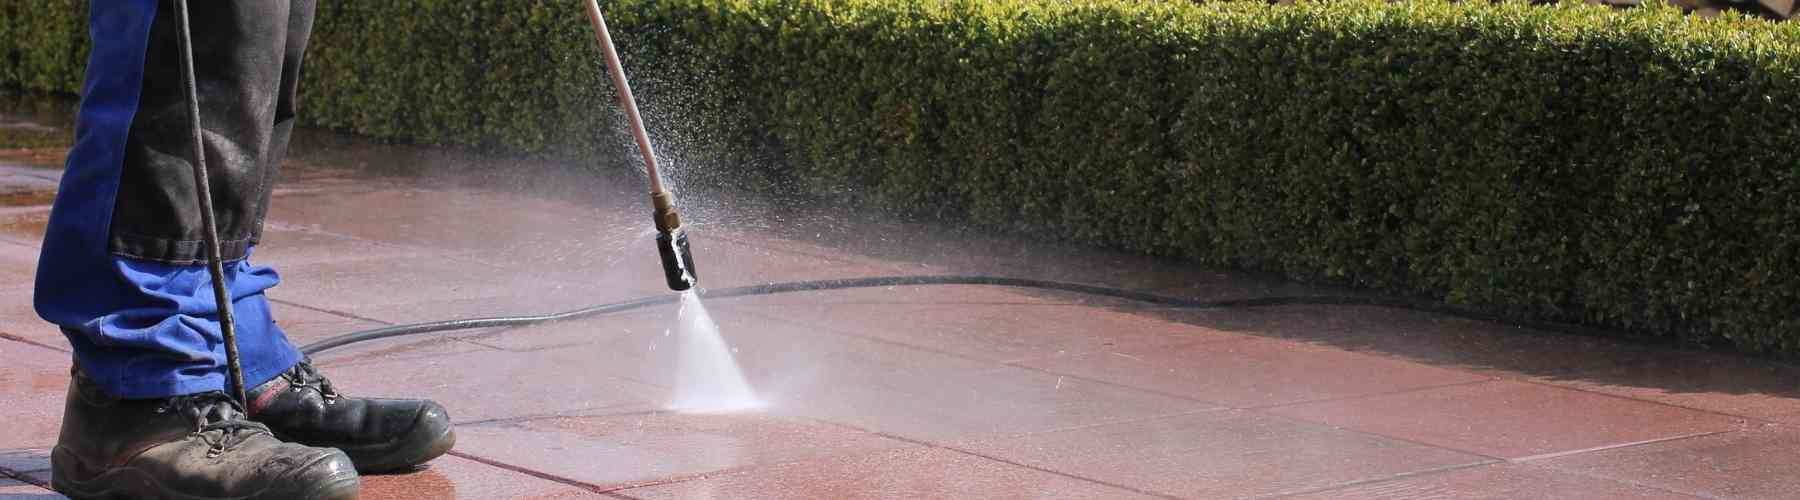 Pressure Washing - Best BusinessePressure Washing - Best Businesses